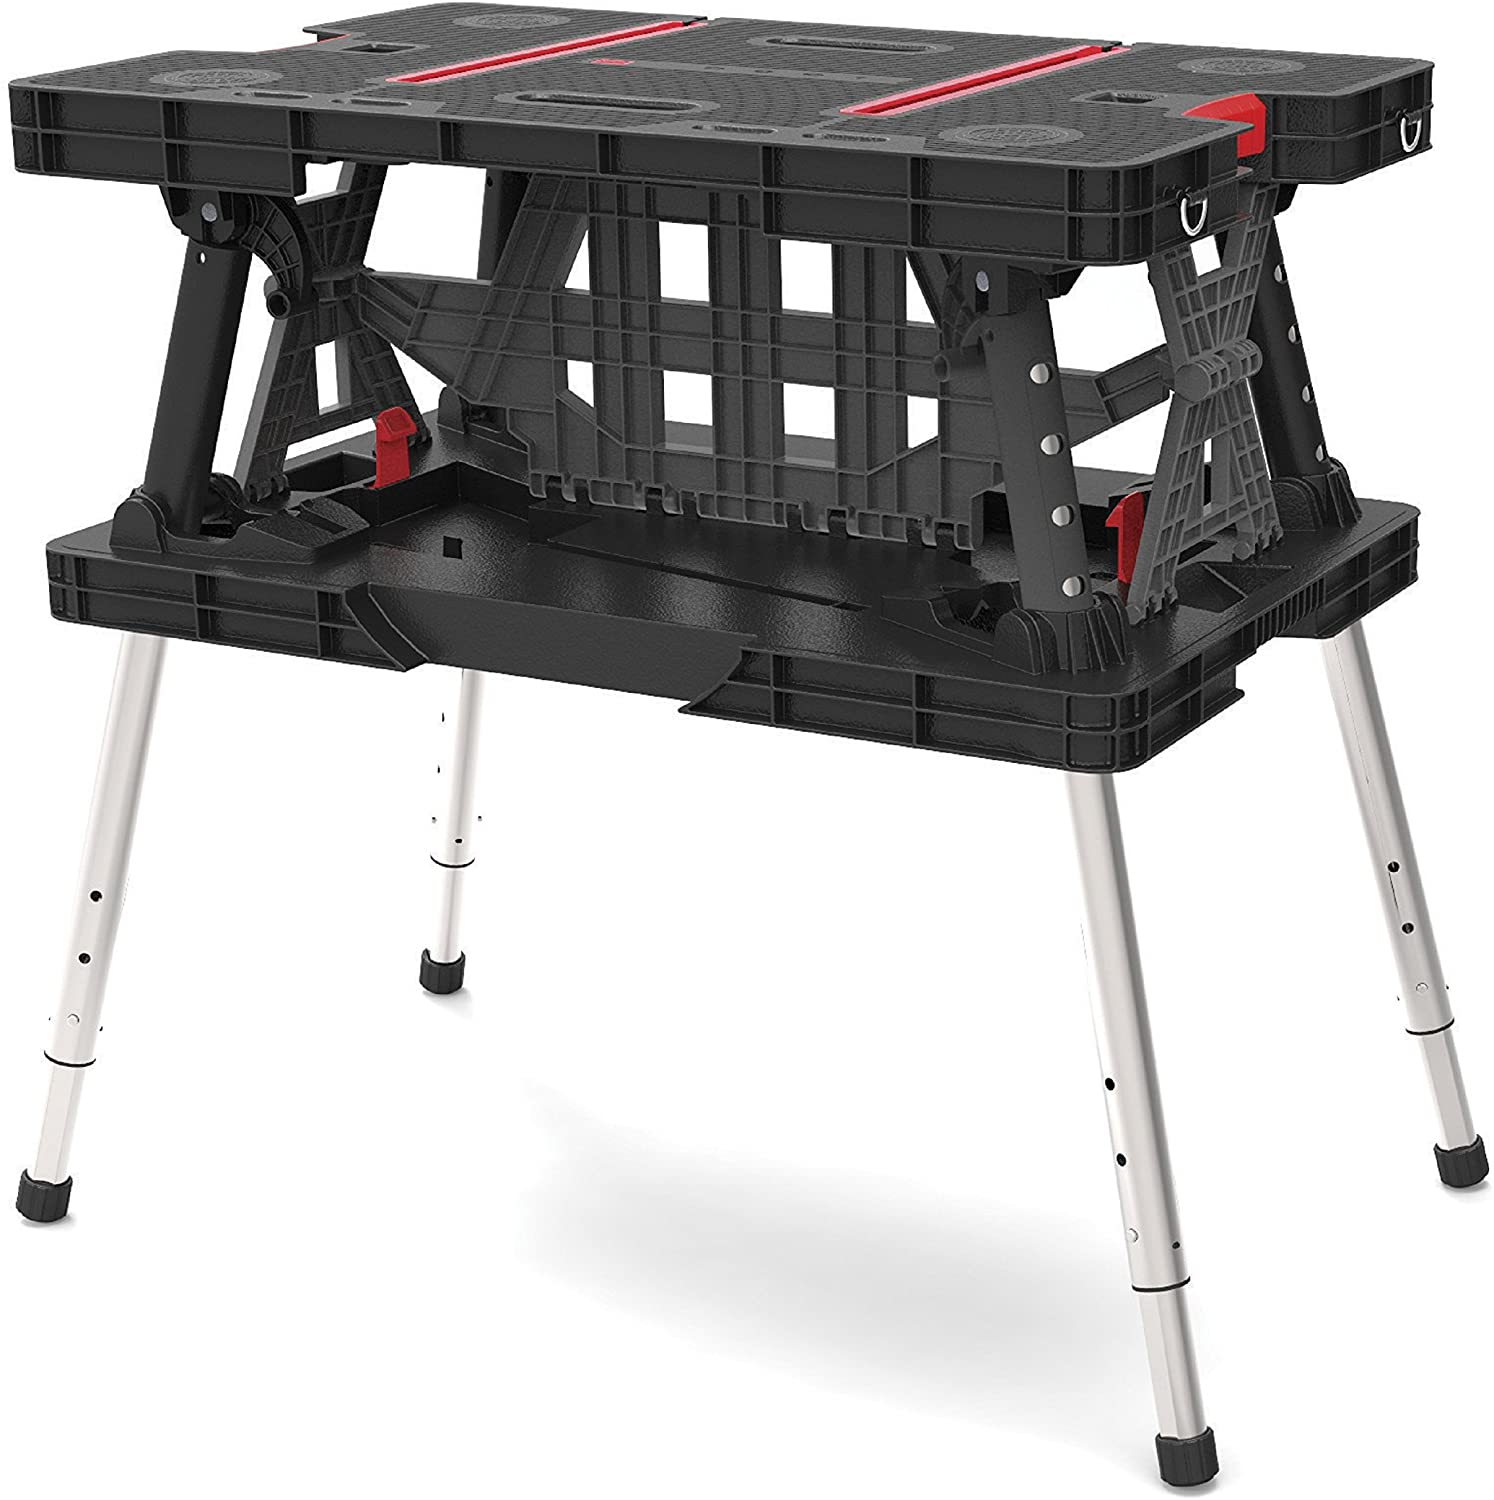 Keter Folding Adjustable Workbench Sawhorse